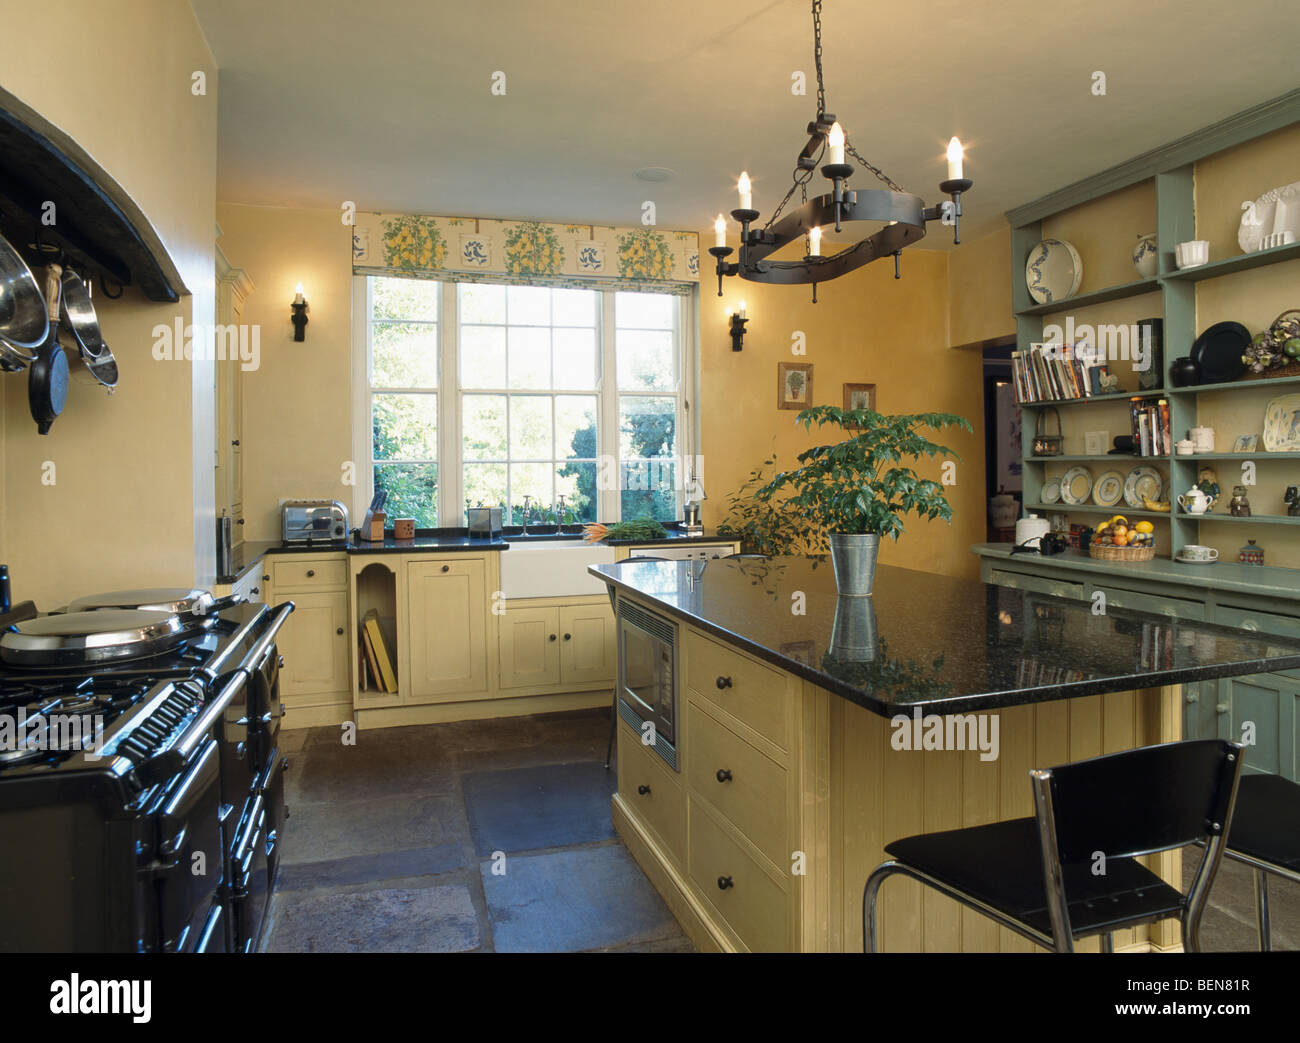 Black Wrought Iron Kitchen Light Fixtures Black Wrought Iron Light Fitting Above Island Unit With Granite